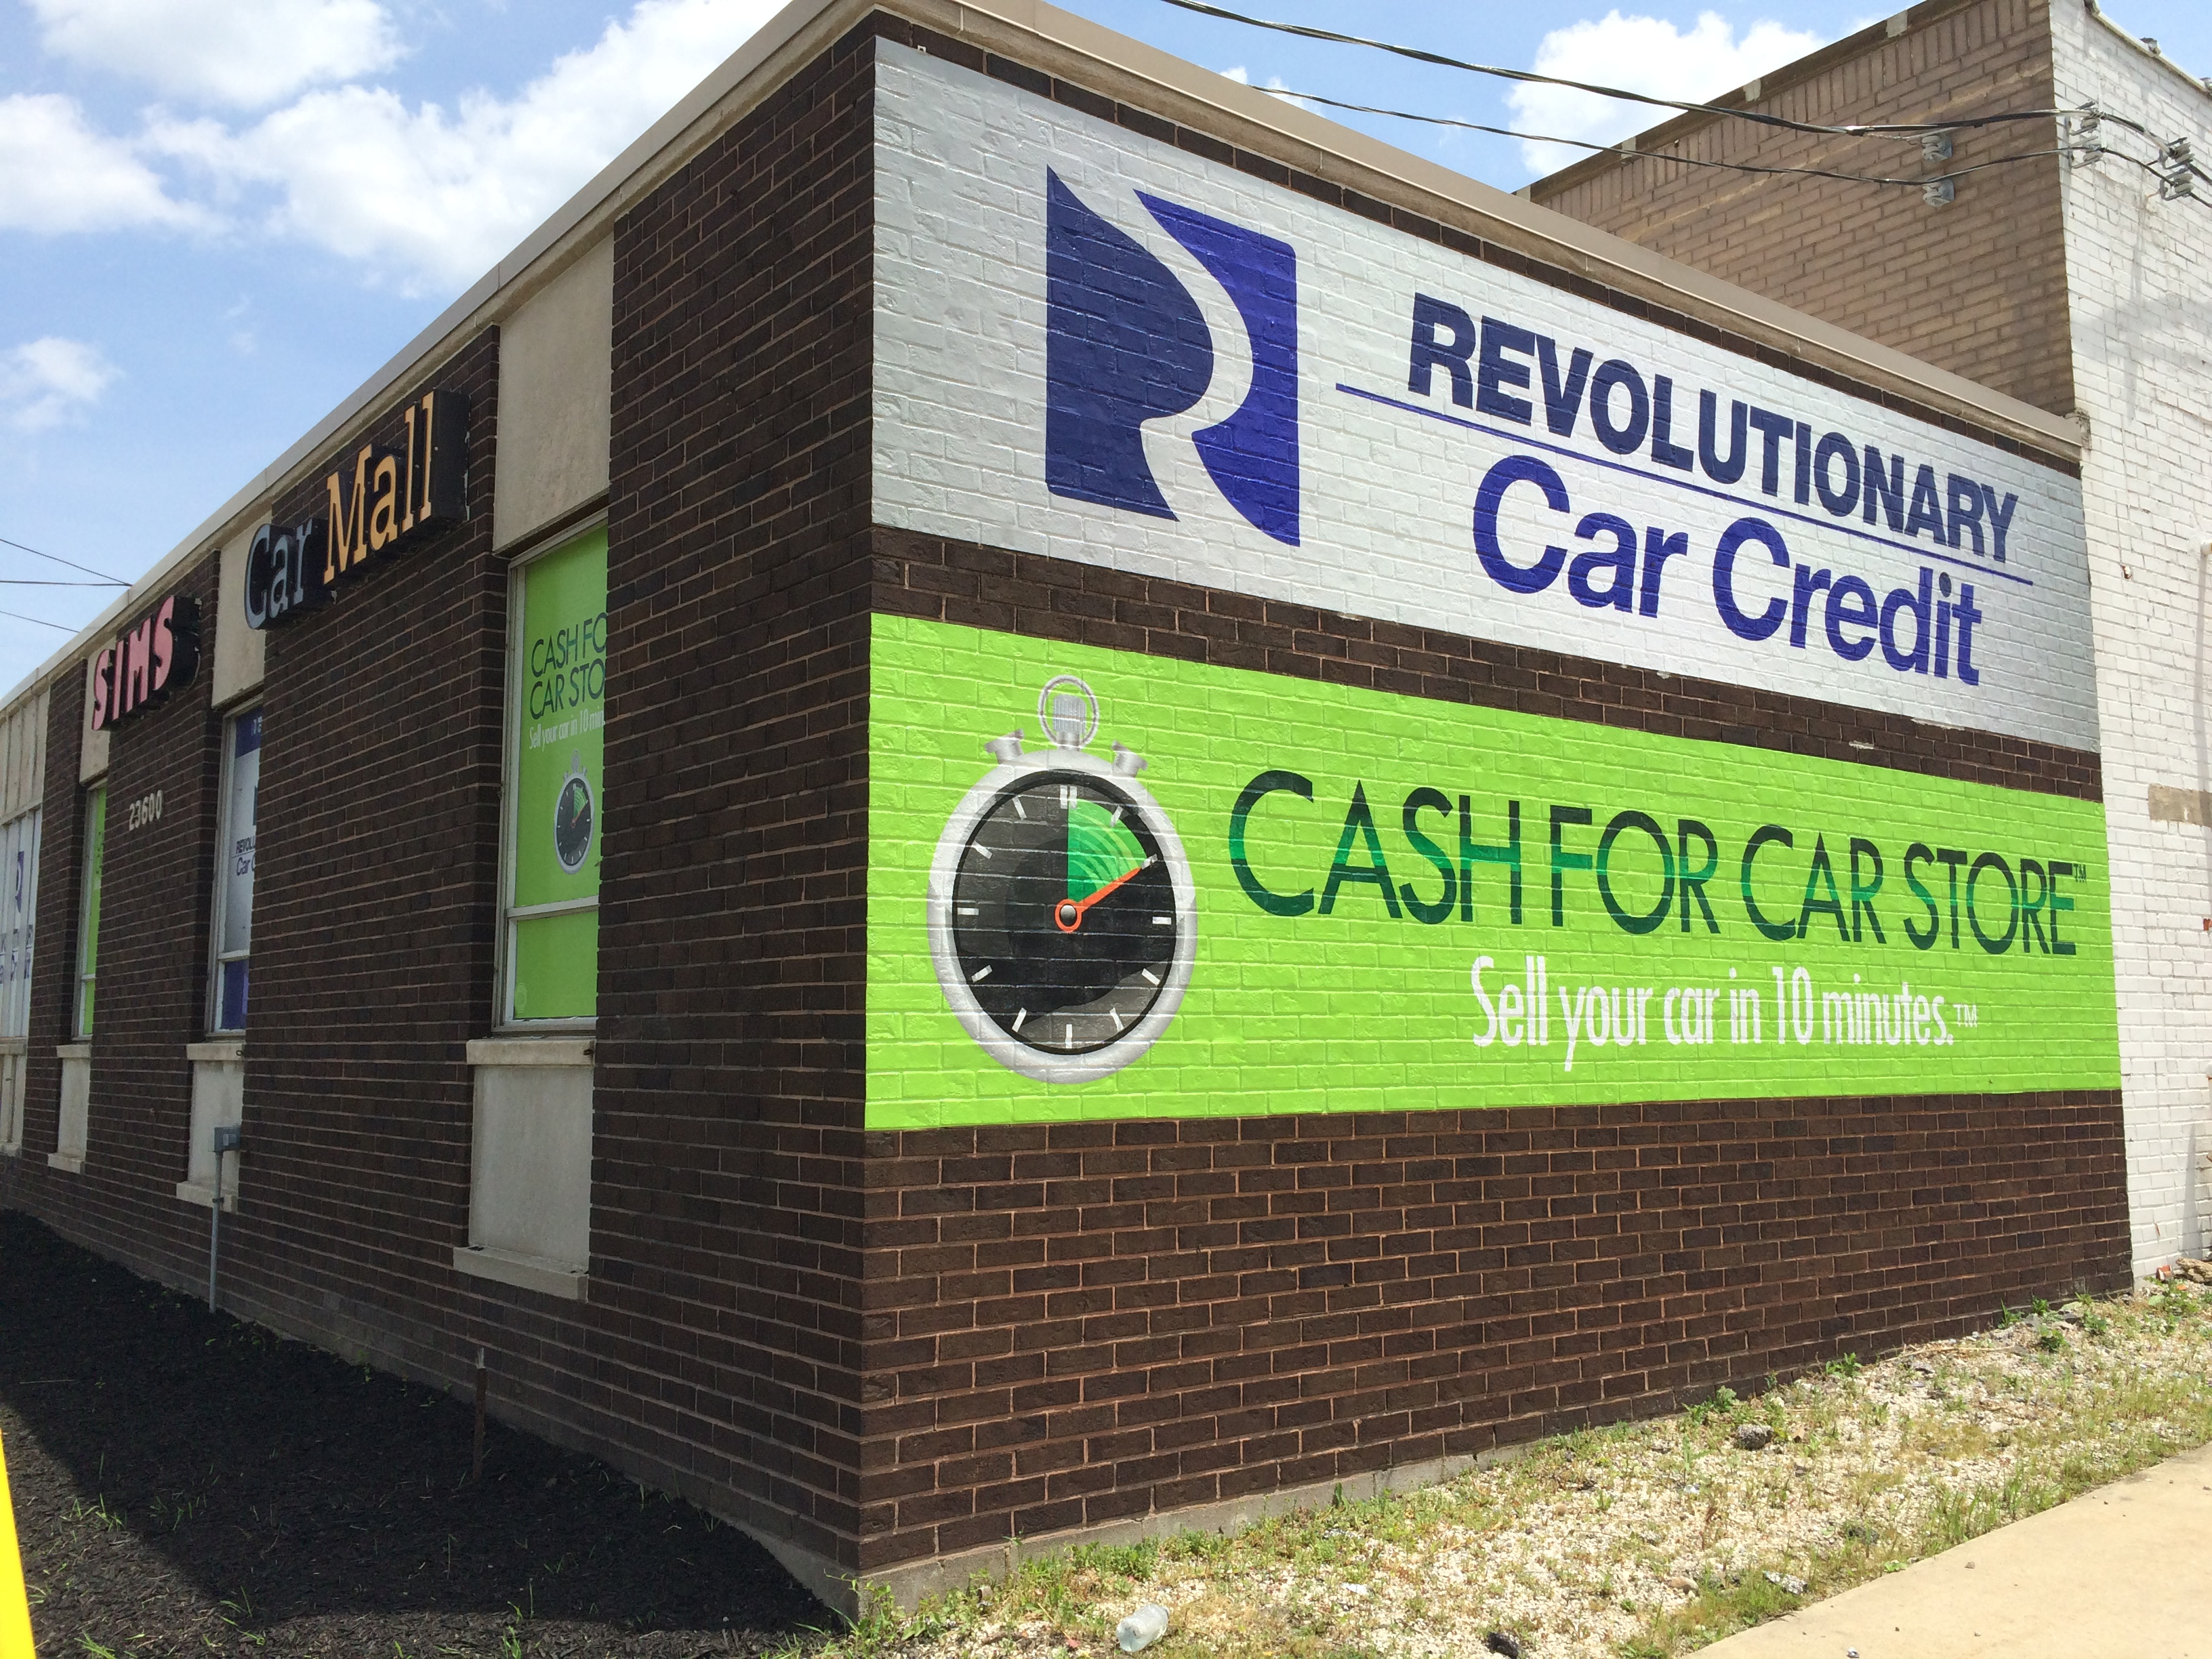 Cash for Car Store image 4